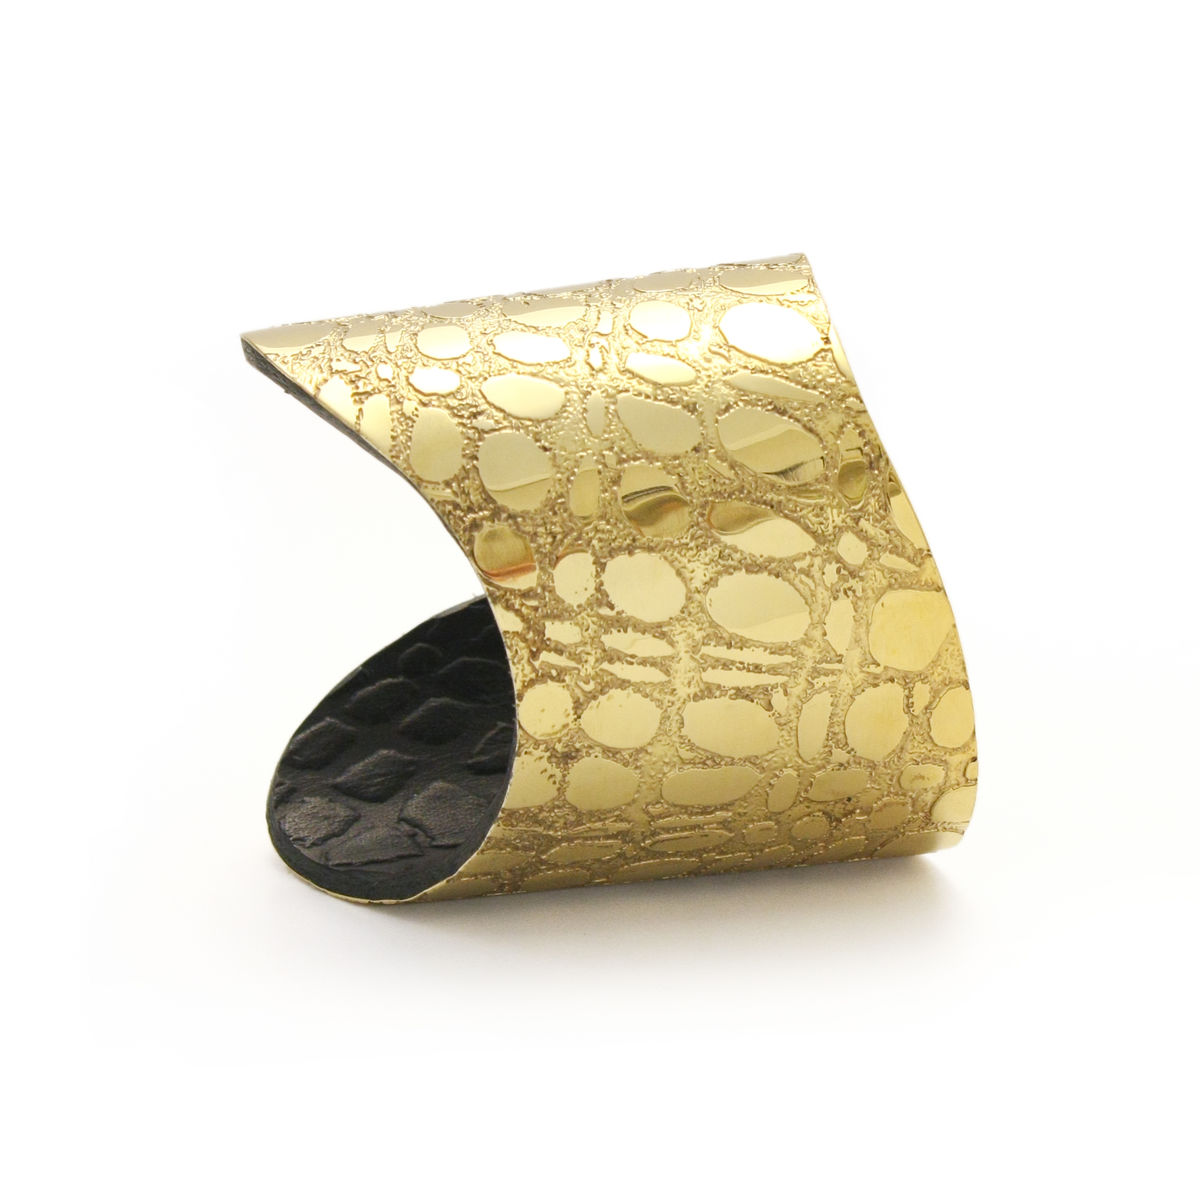 Skin Textured Gold & Black Etched Cuff (long) - Sara Gunn - product images  of